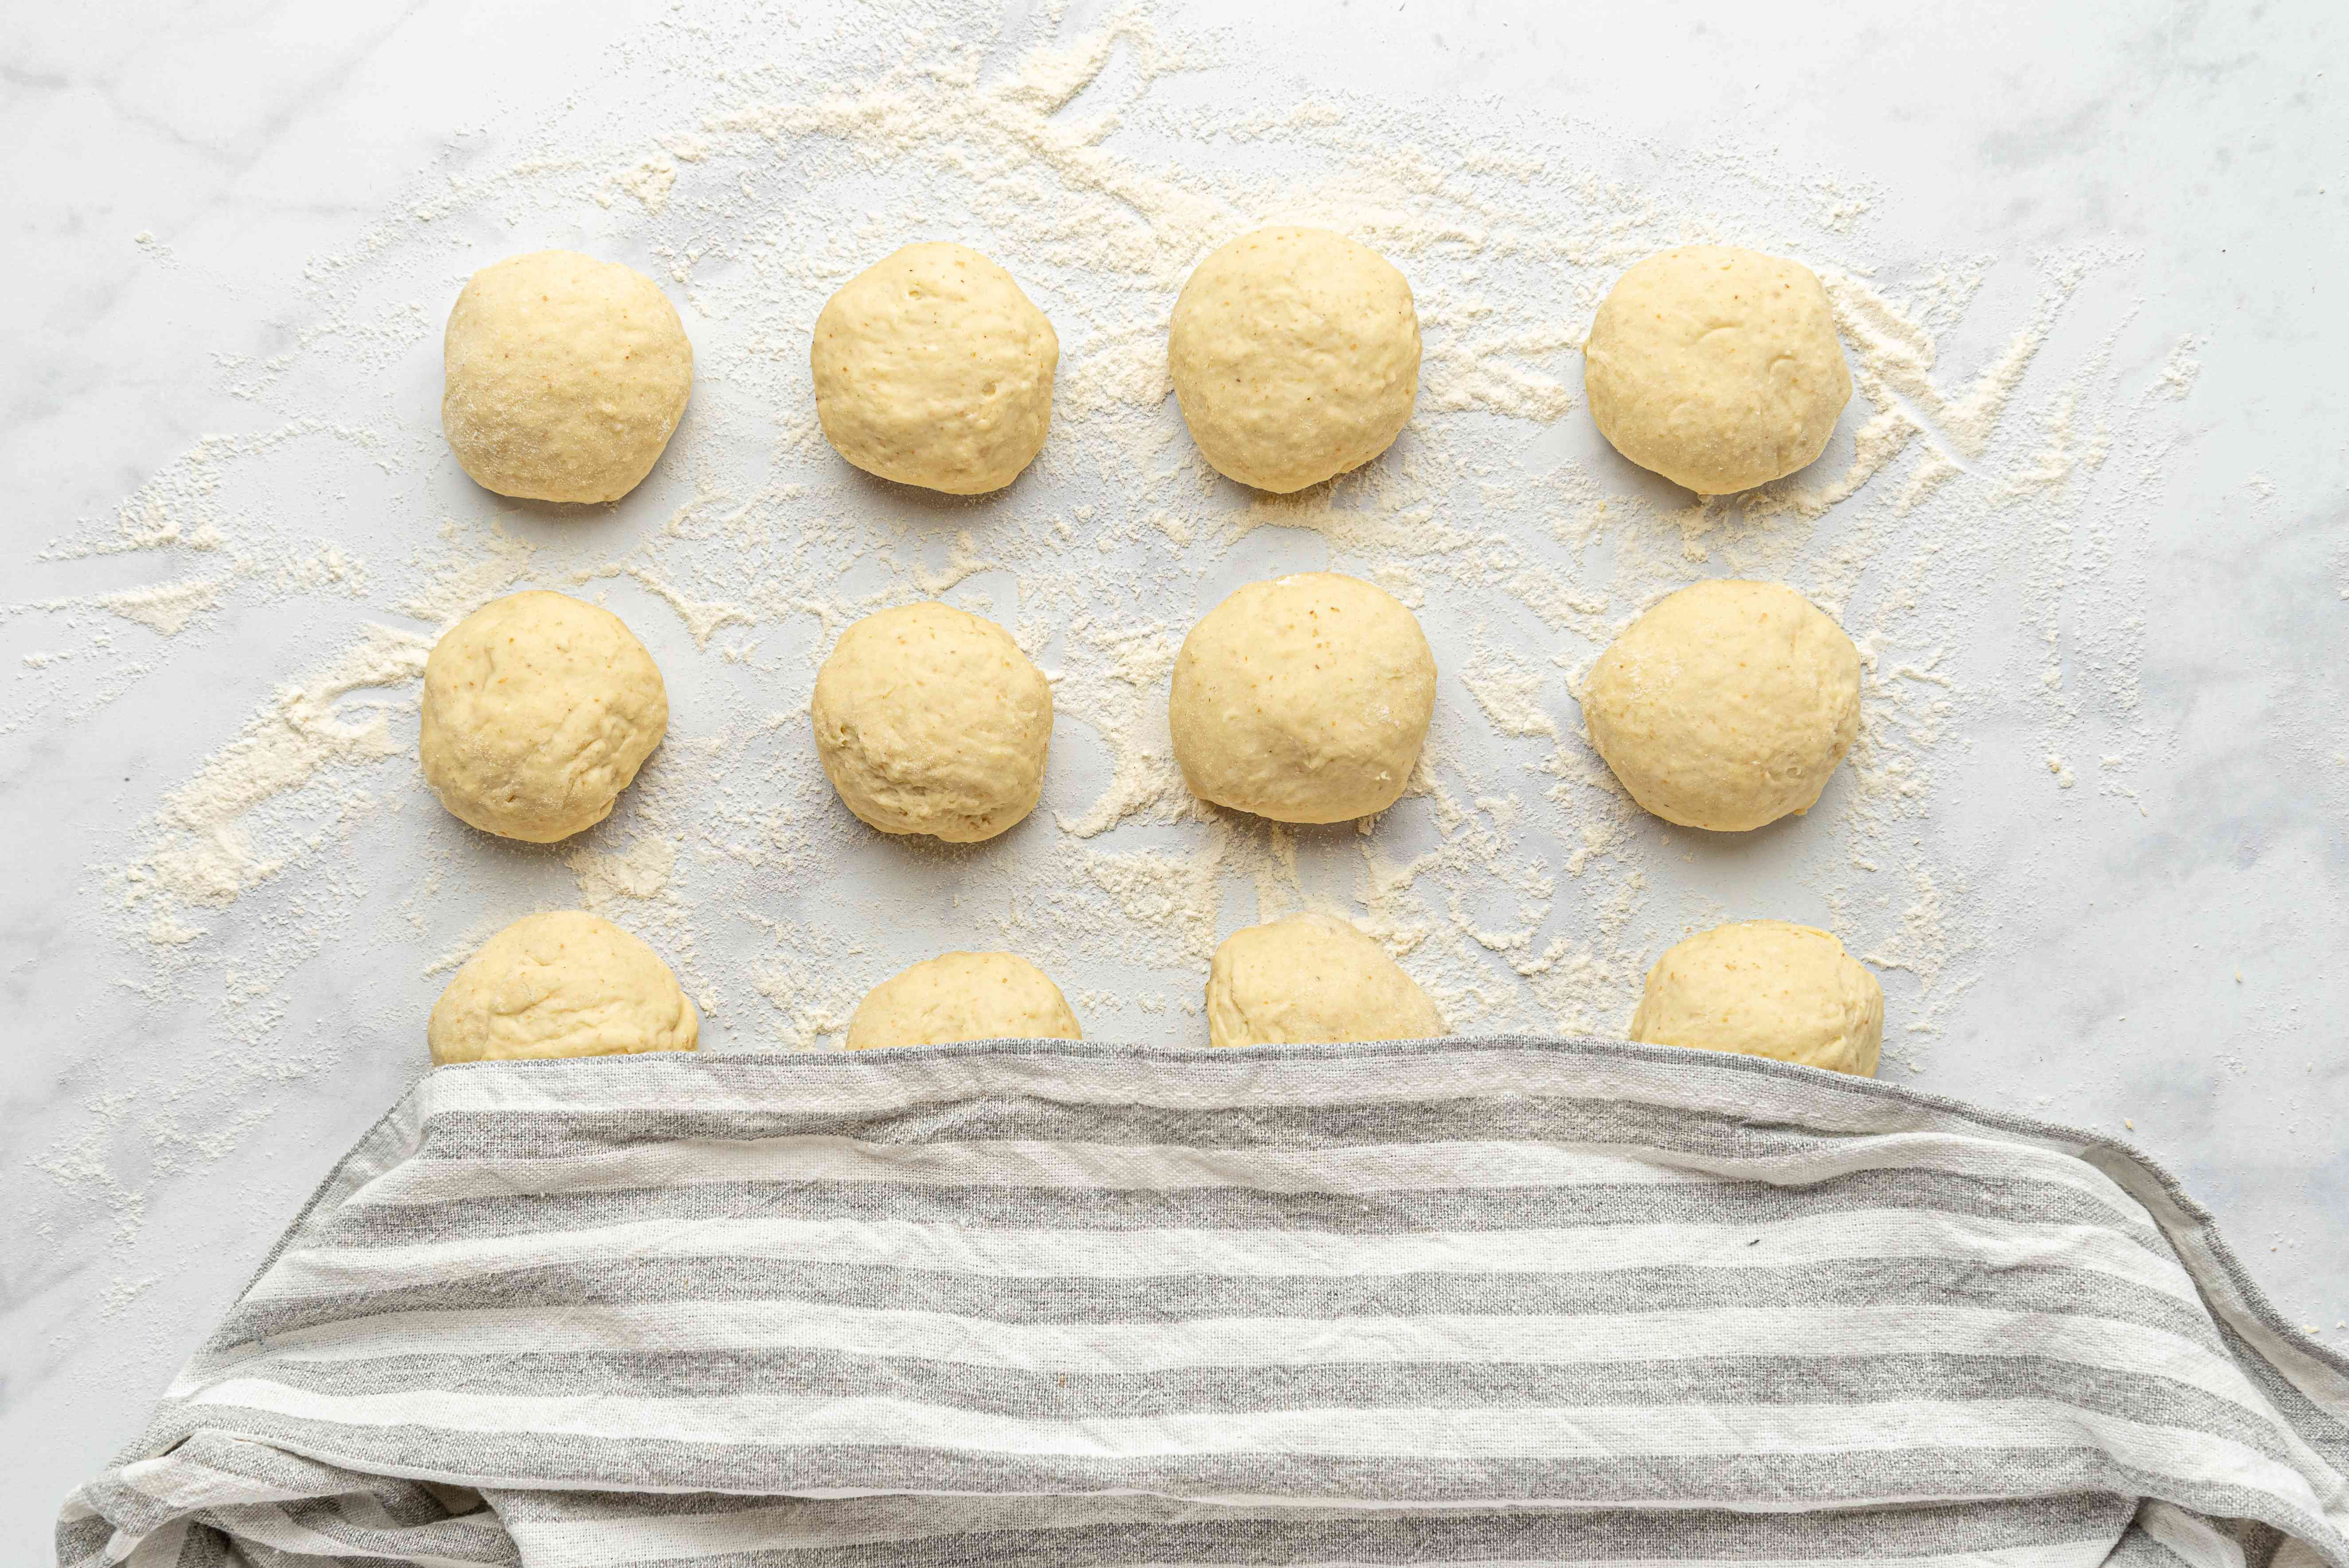 dough balls covered with a towel on a floured surface